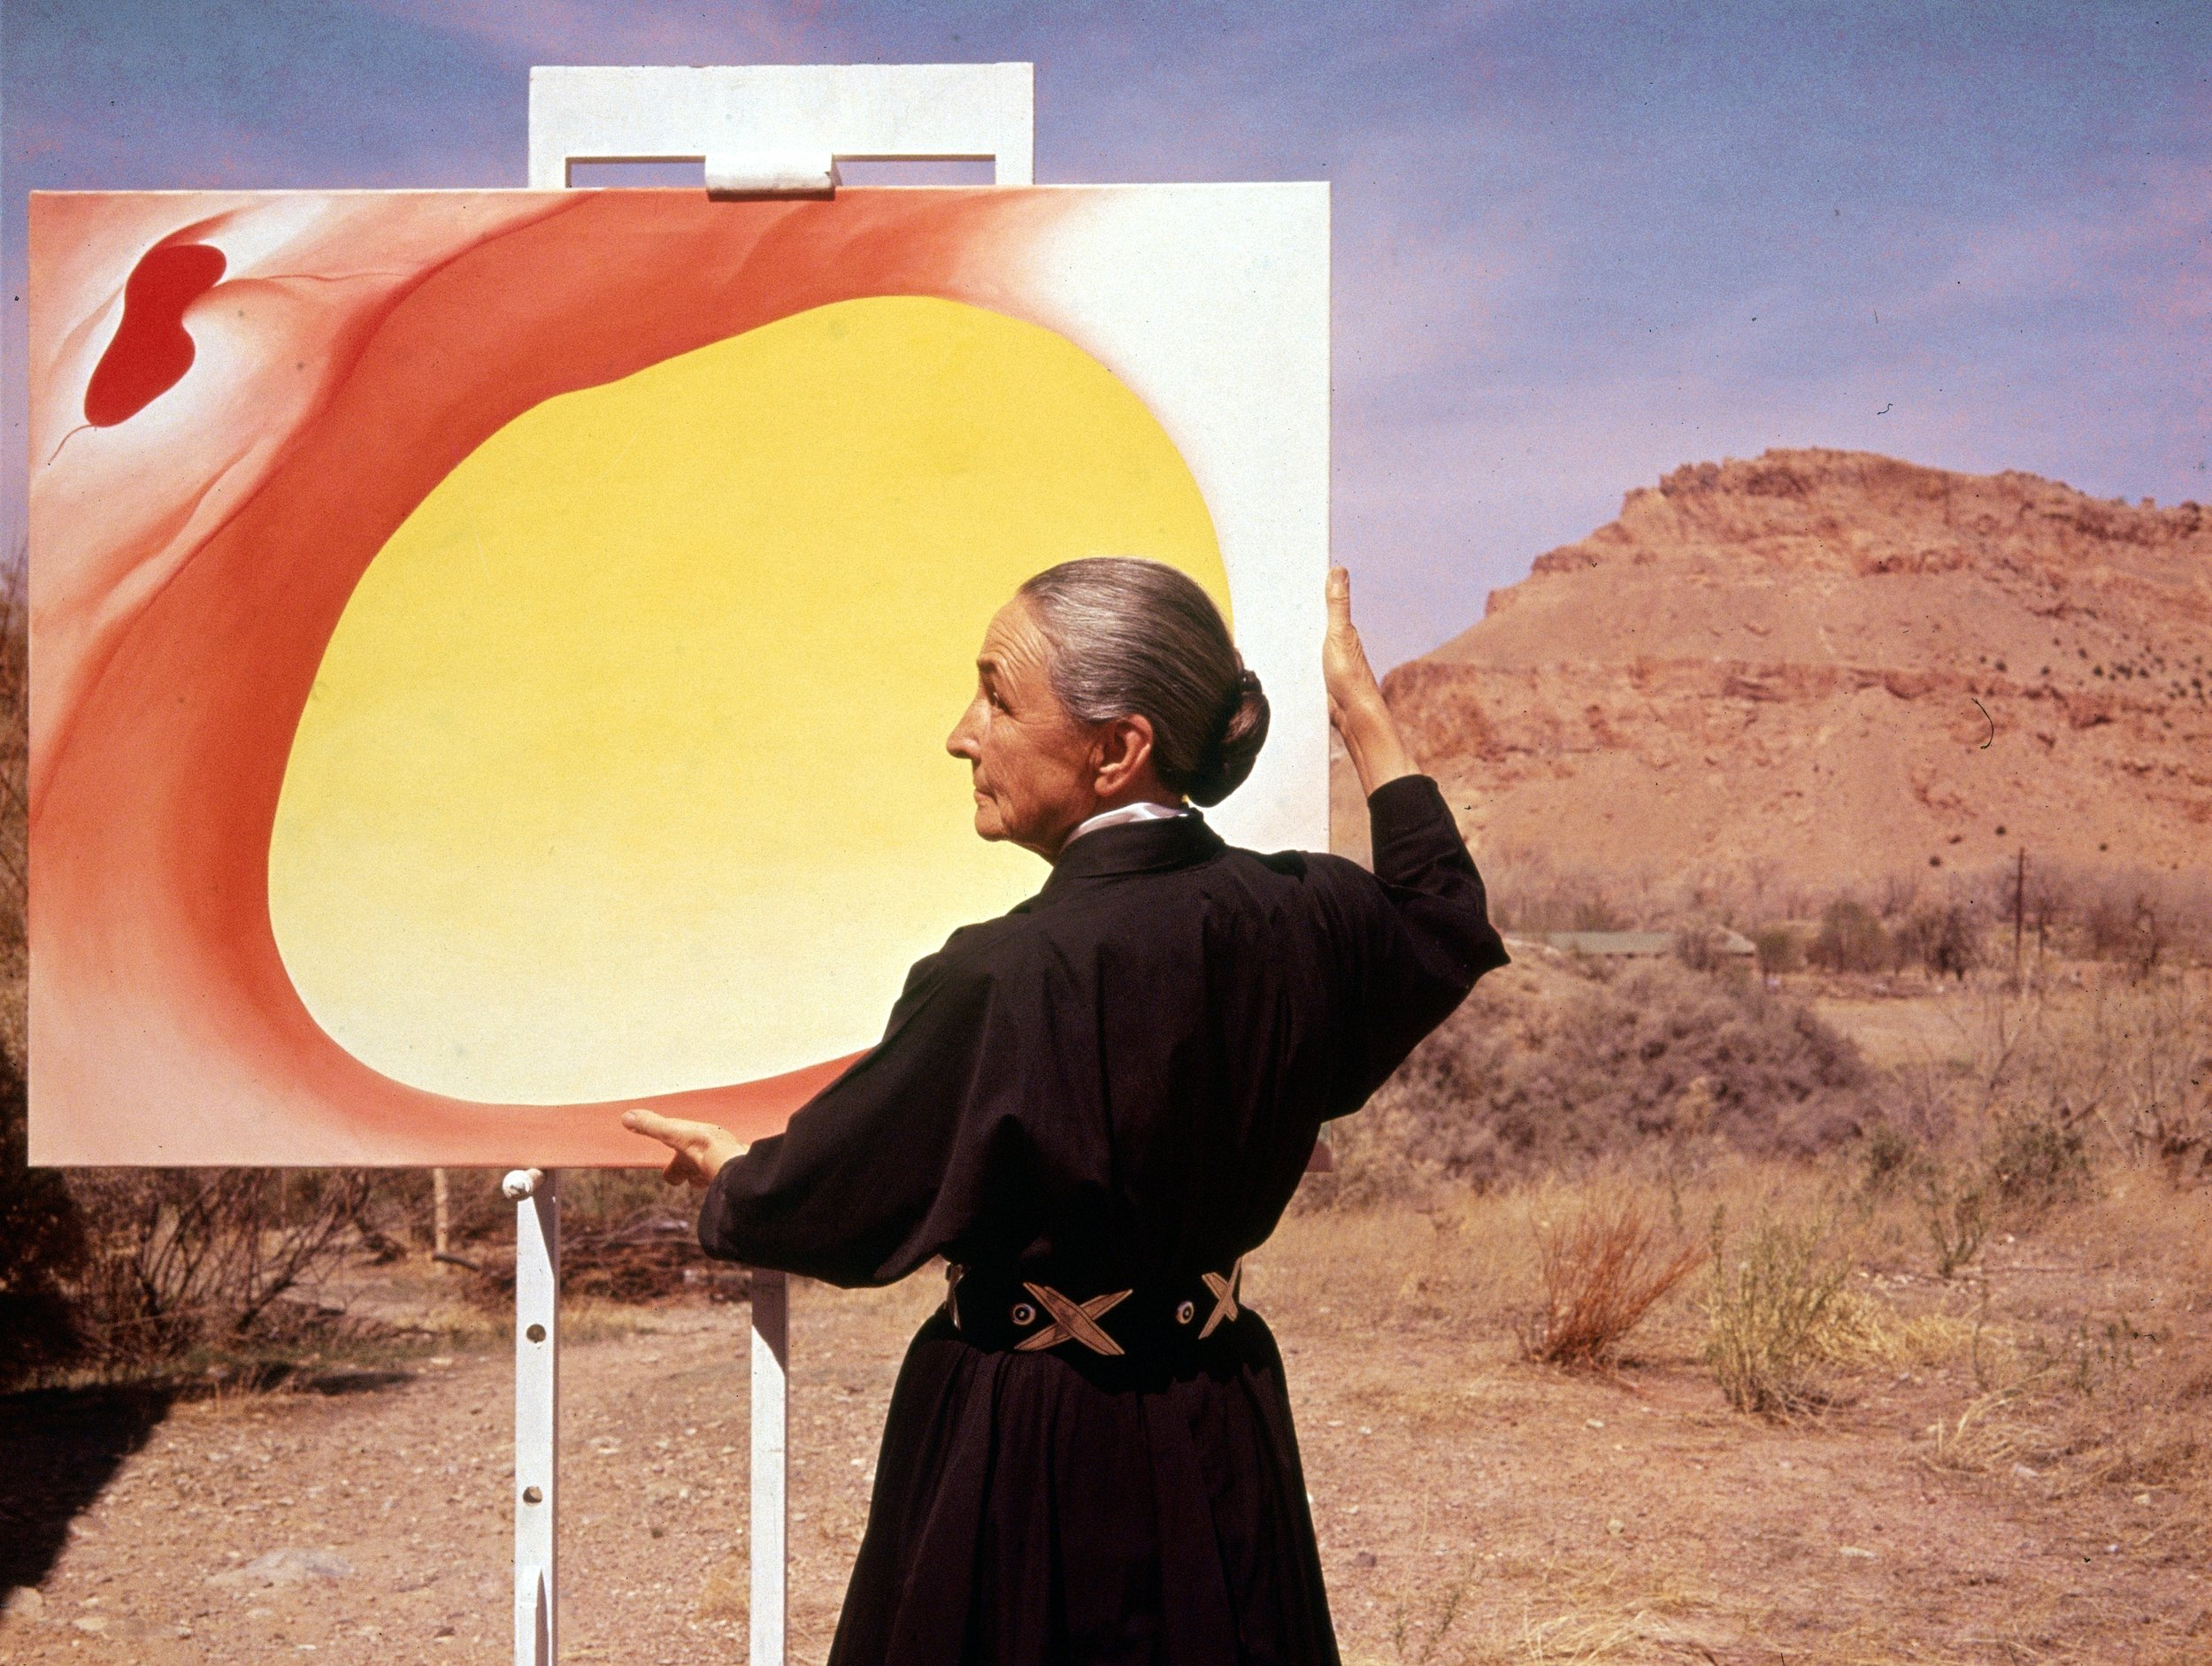 Georgia O'Keeffe at her outdoor easel in Albuquerque, New Mexico;1960  Tony Vaccaro/Getty Images